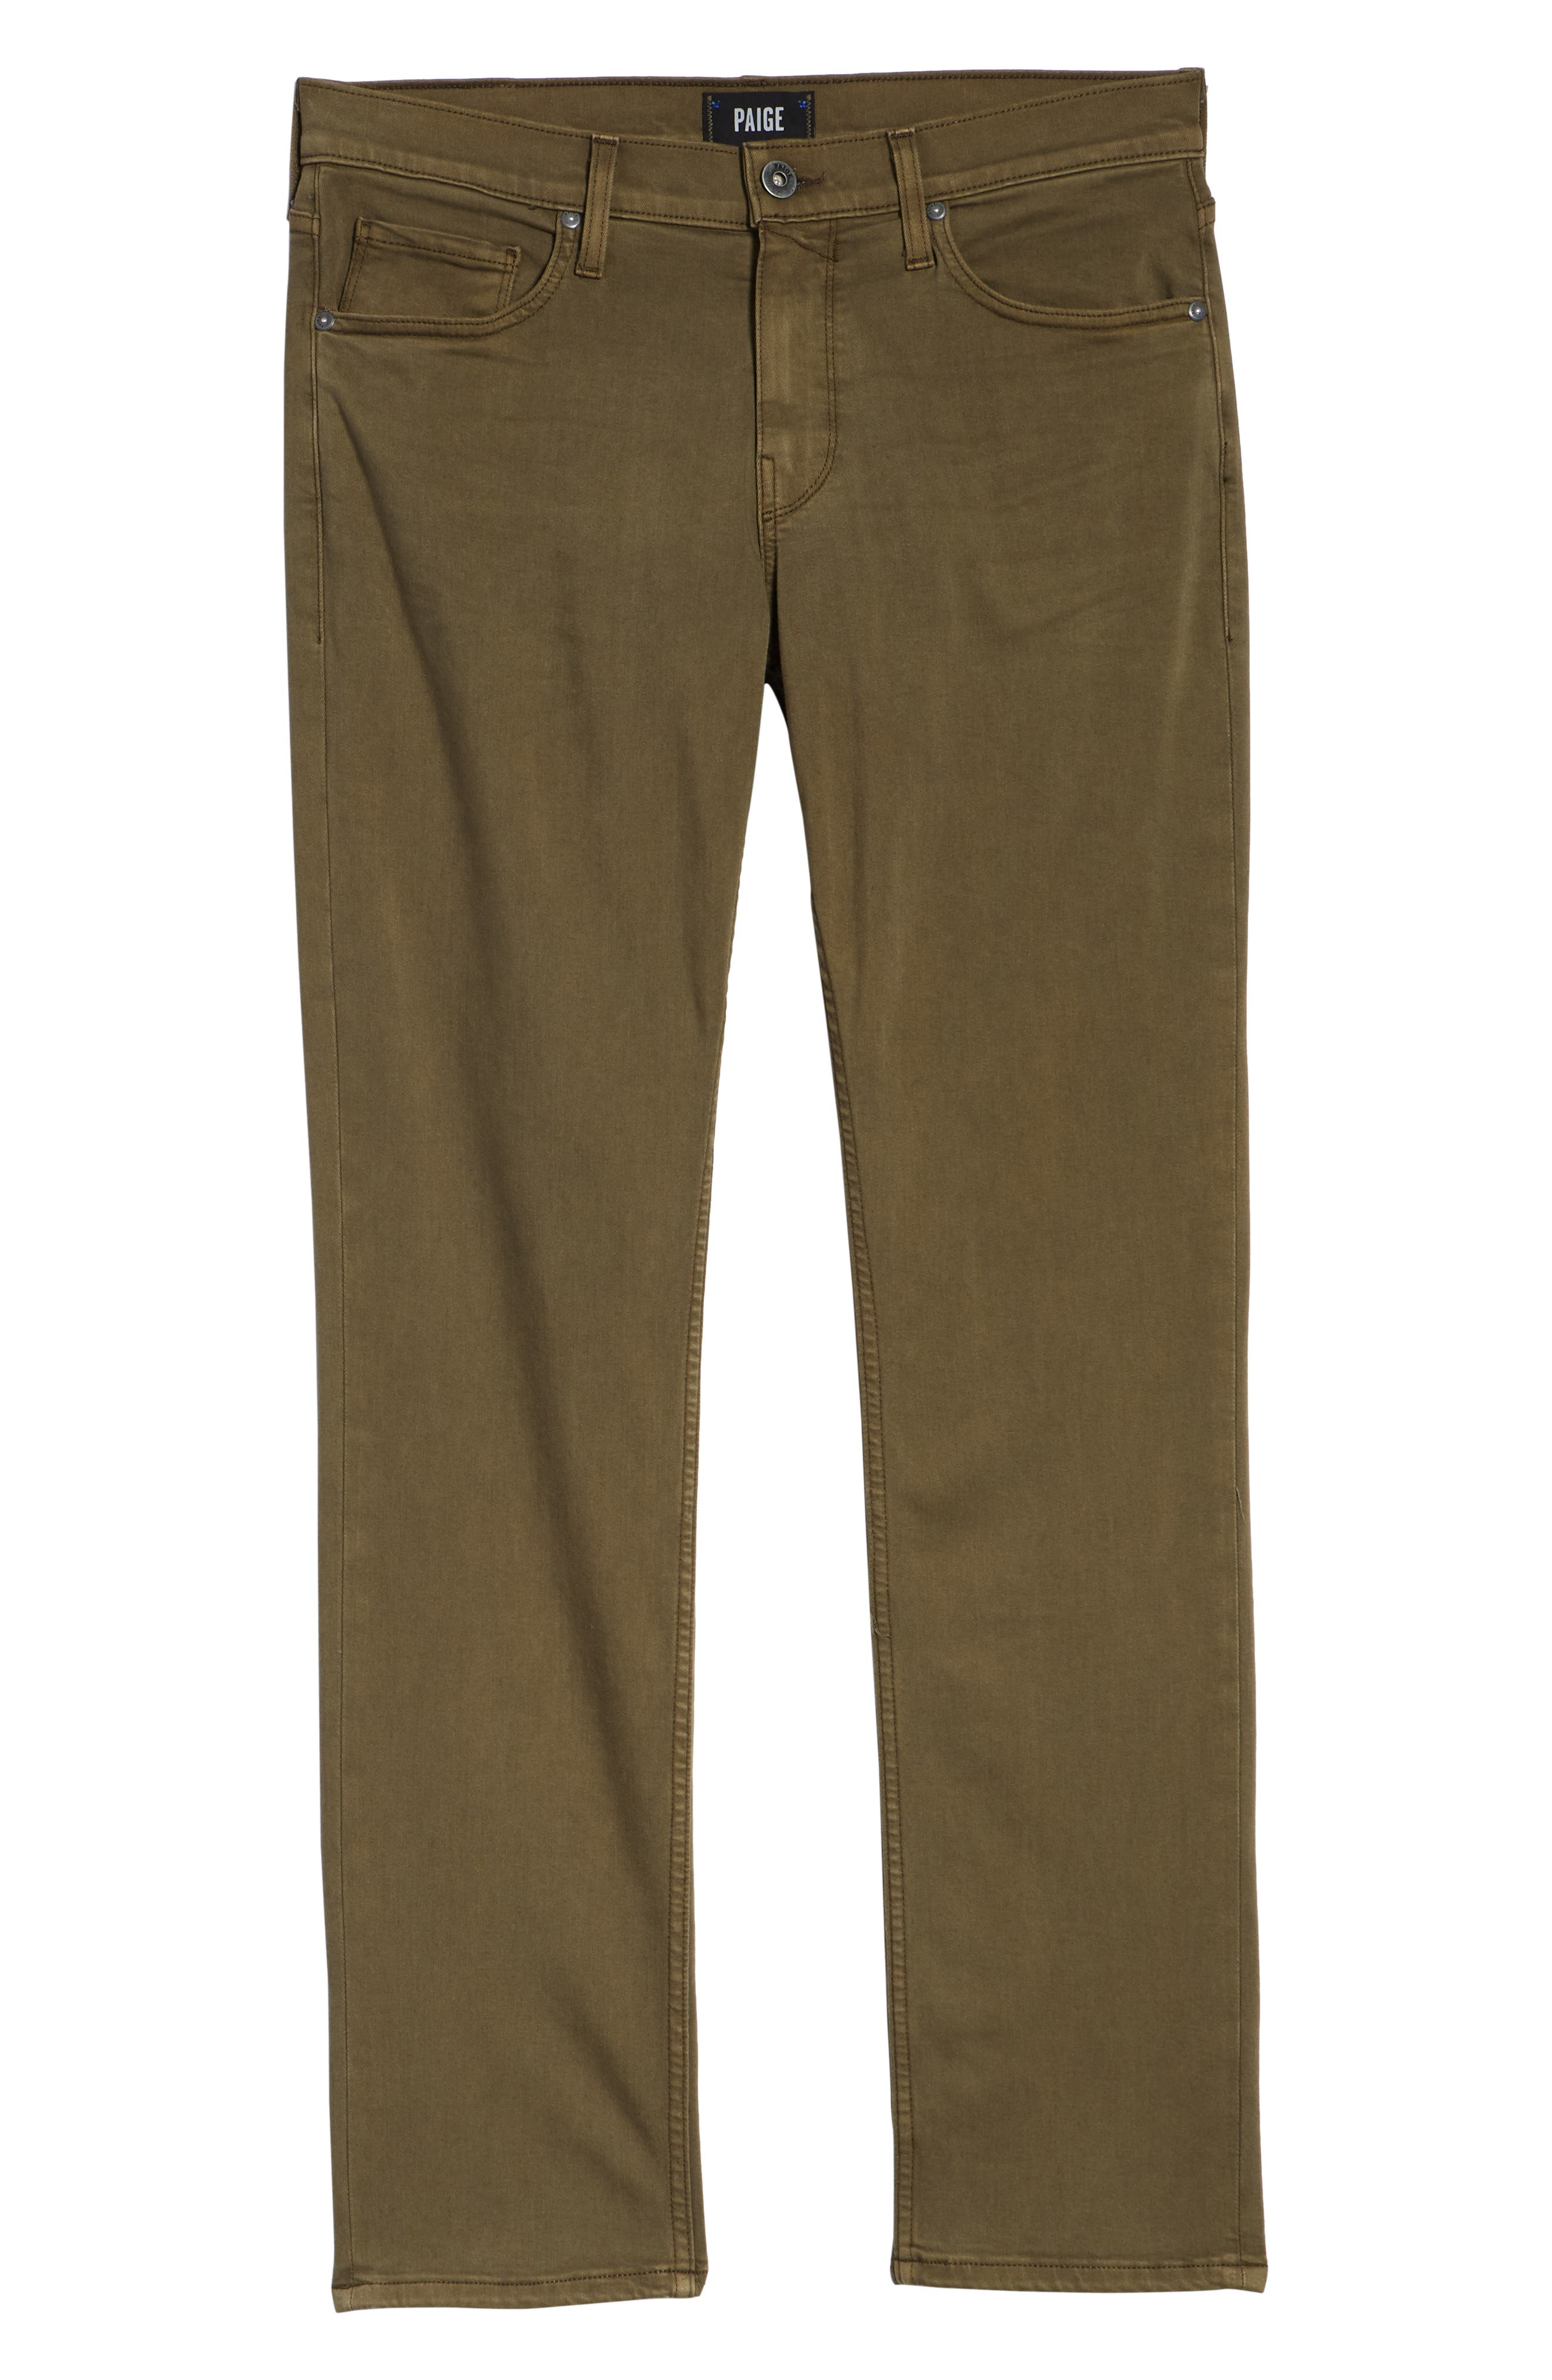 Transcend - Normandie Straight Leg Jeans,                             Alternate thumbnail 6, color,                             VINTAGE ARTICHOKE